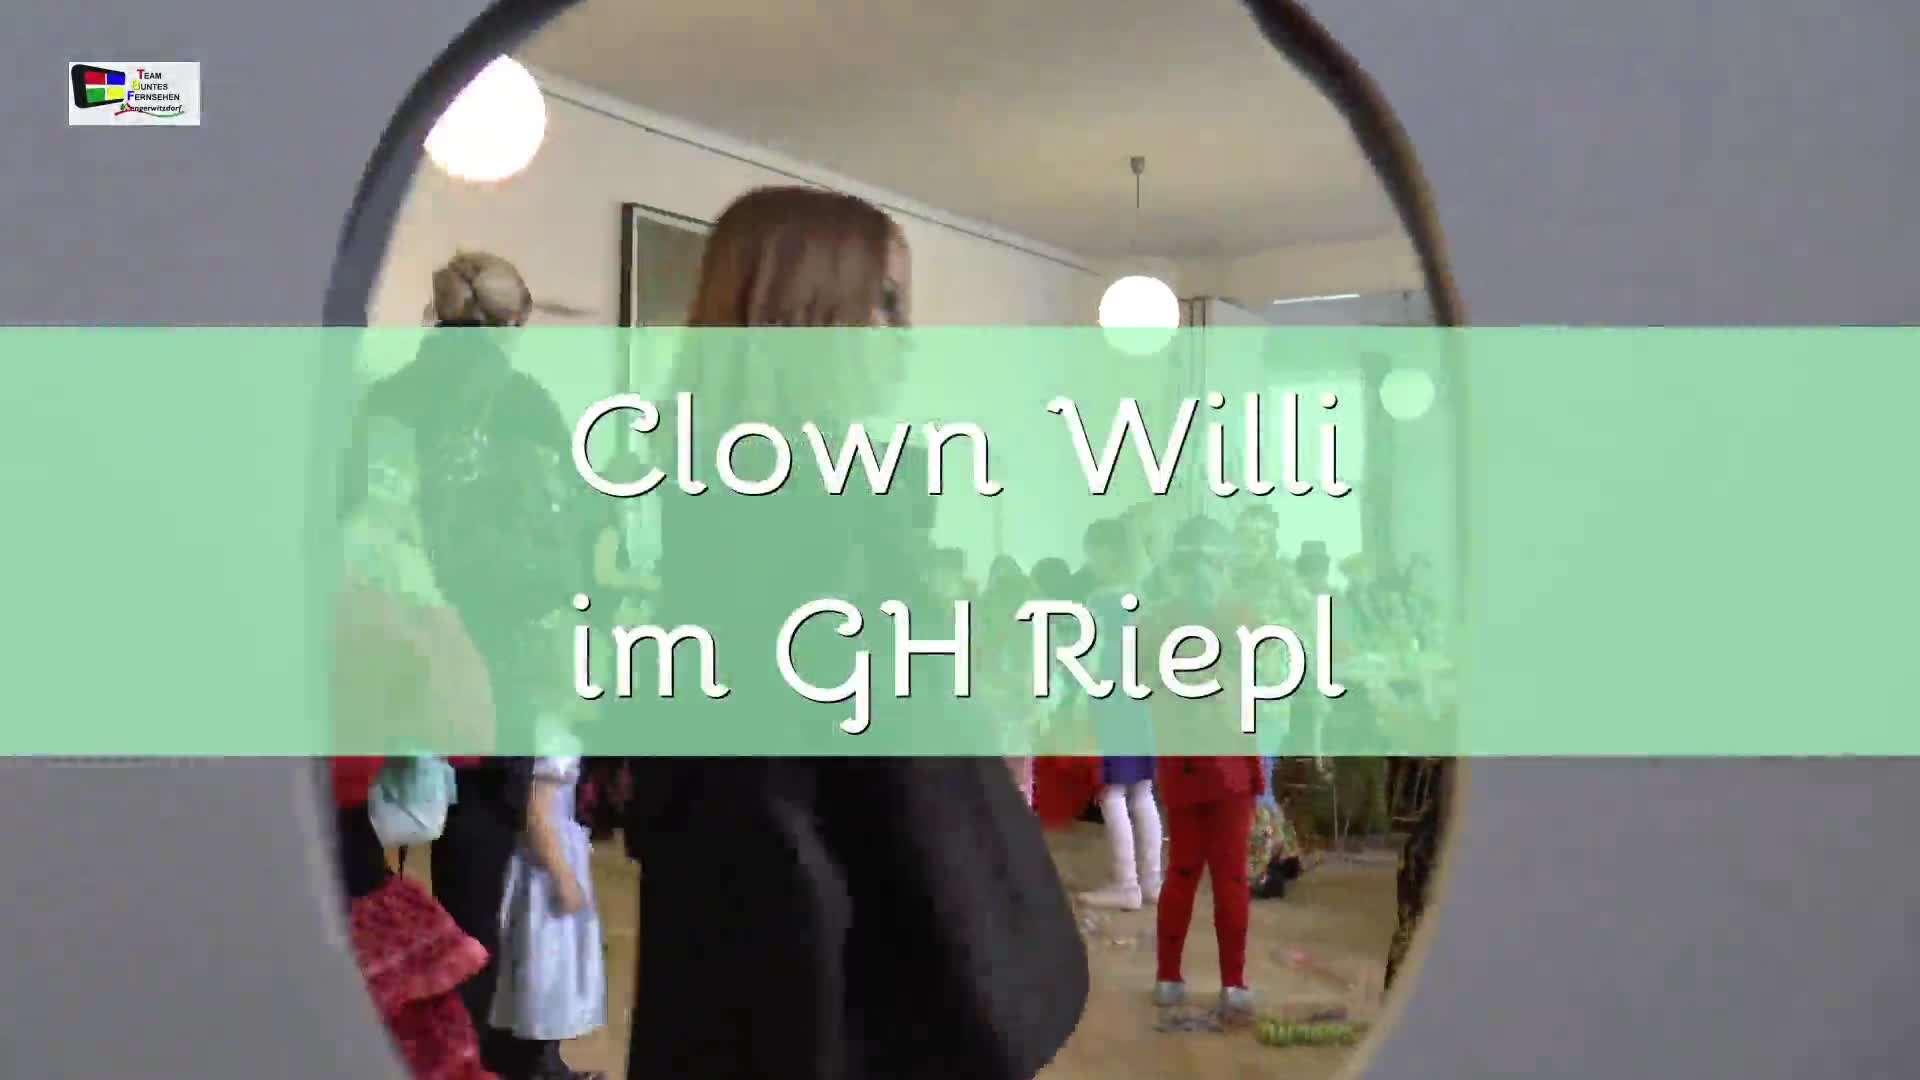 Clown Willi im Gasthaus Riepl